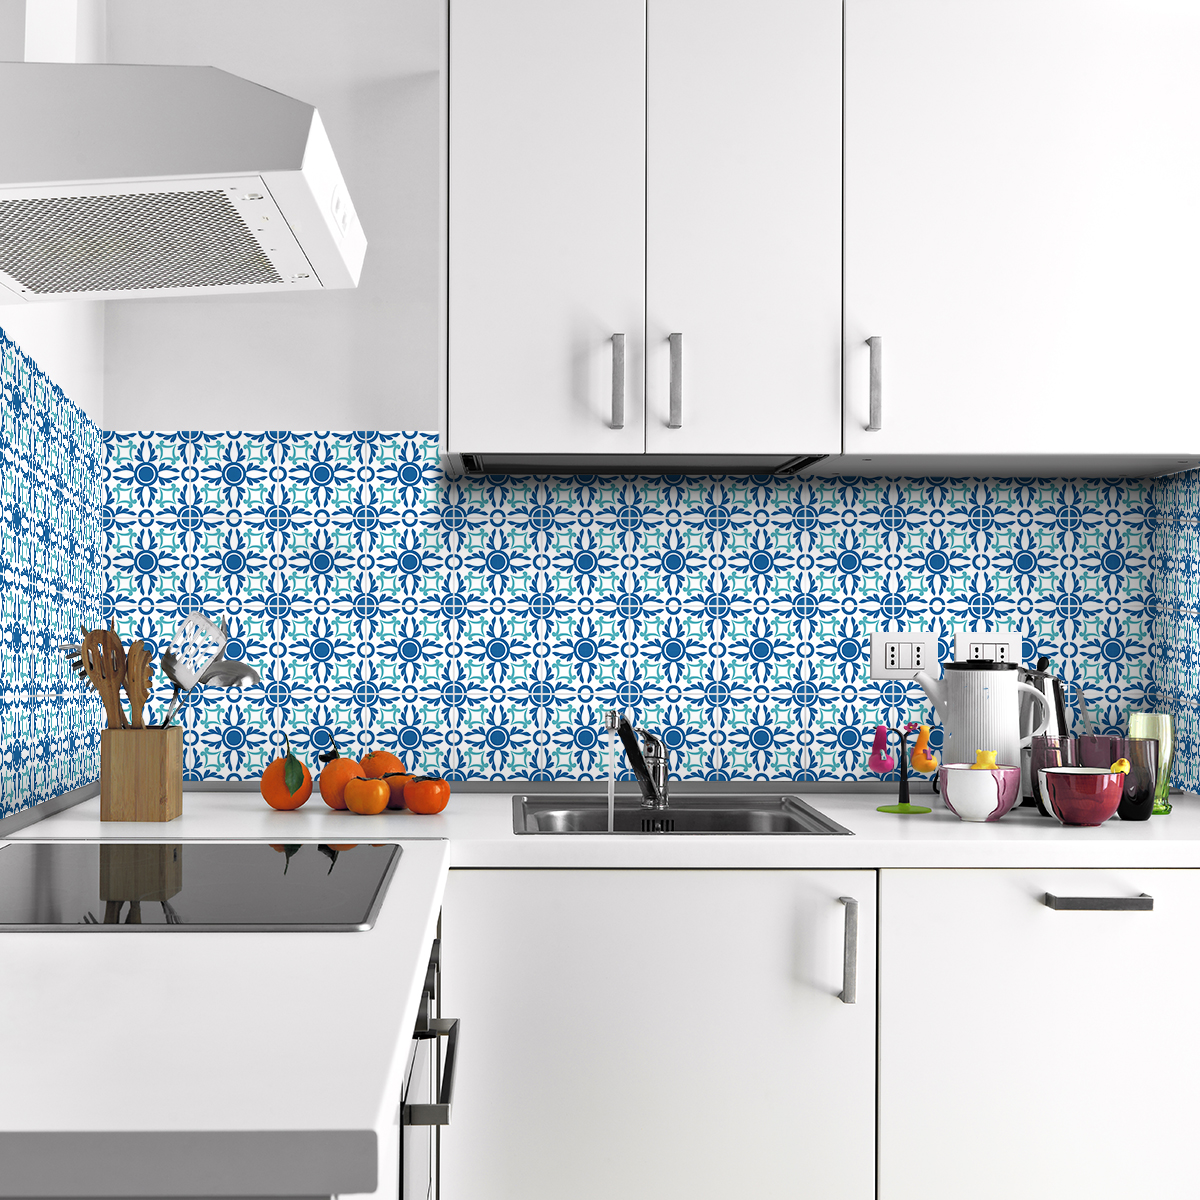 60 stickers carreaux de ciment azulejos calla cuisine for Stickers carrelage cuisine 15x15